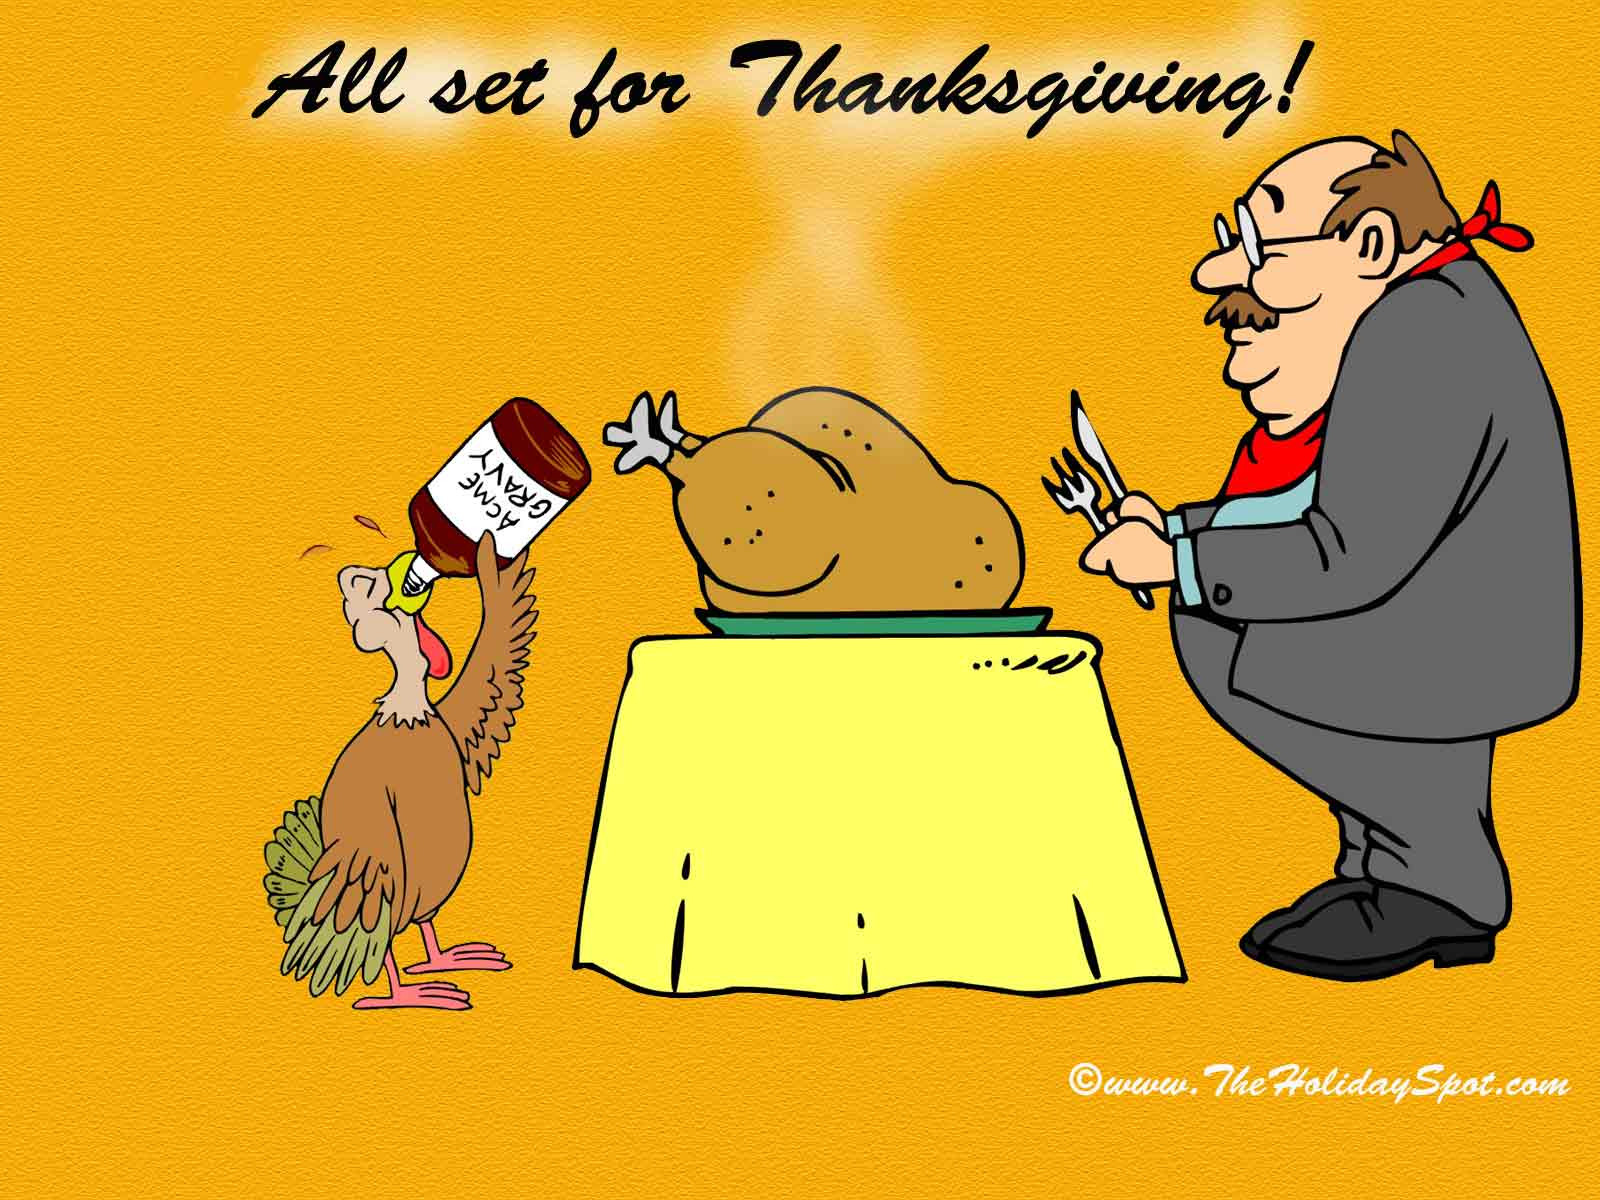 Humorous Thanksgiving Quotes  New Wallpaper 2012 Thanksgiving Wallpaper Happy